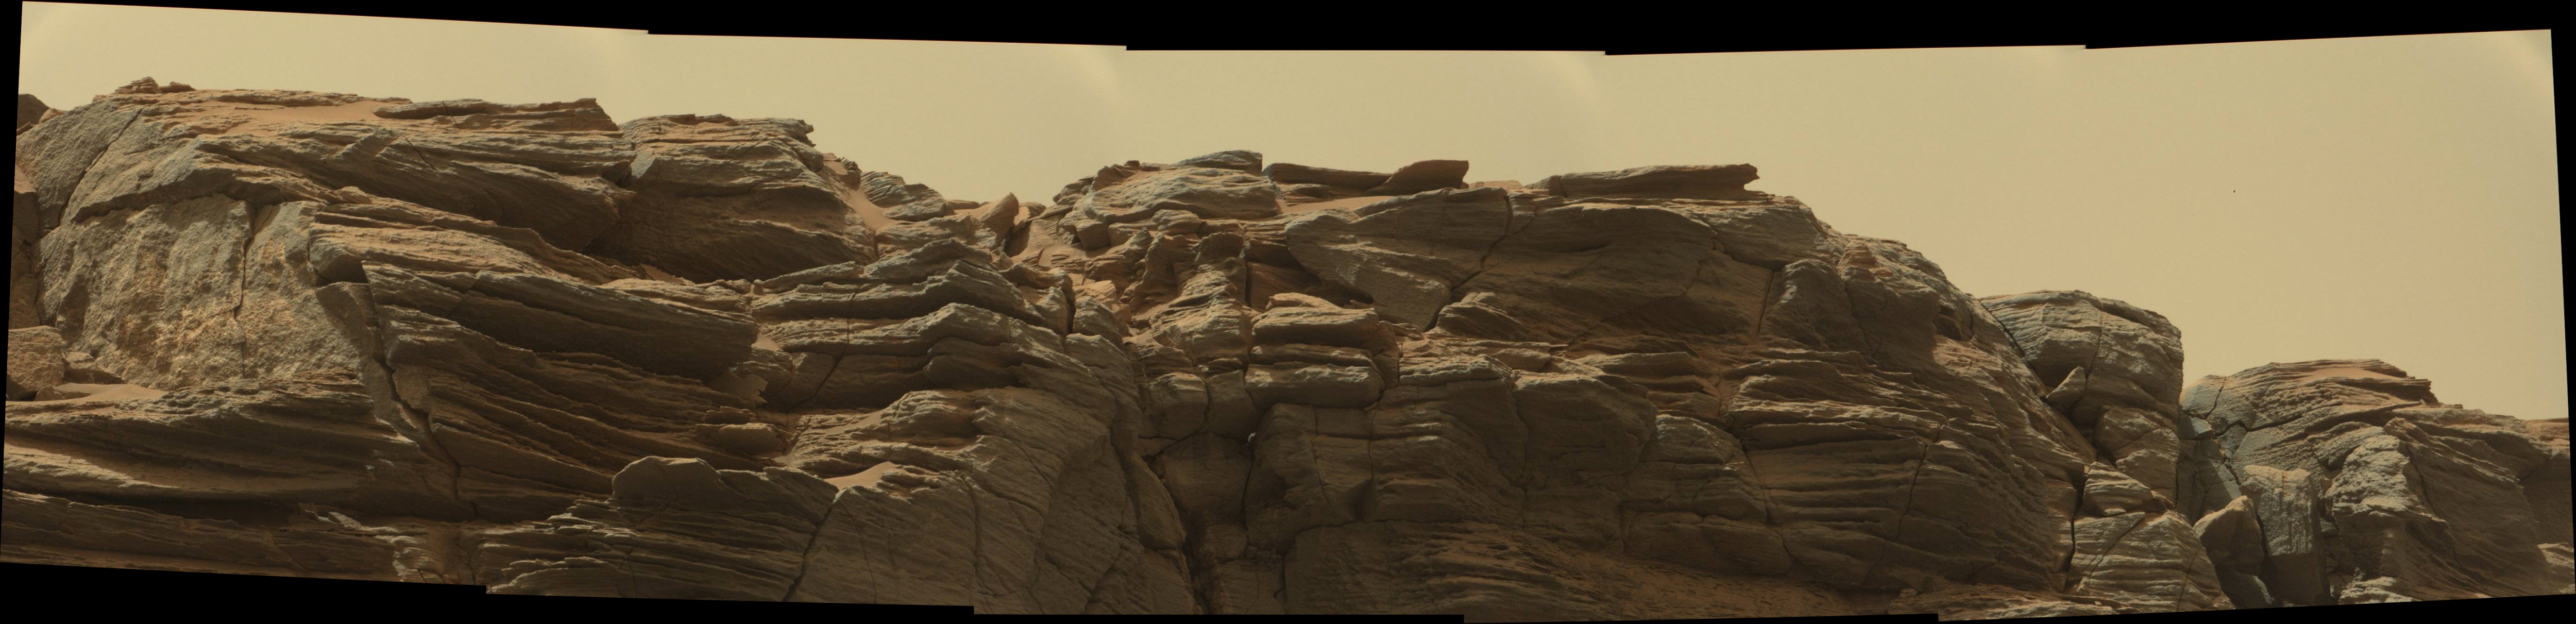 panoramic-curiosity-rover-view-1-sol-1459-was-life-on-mars